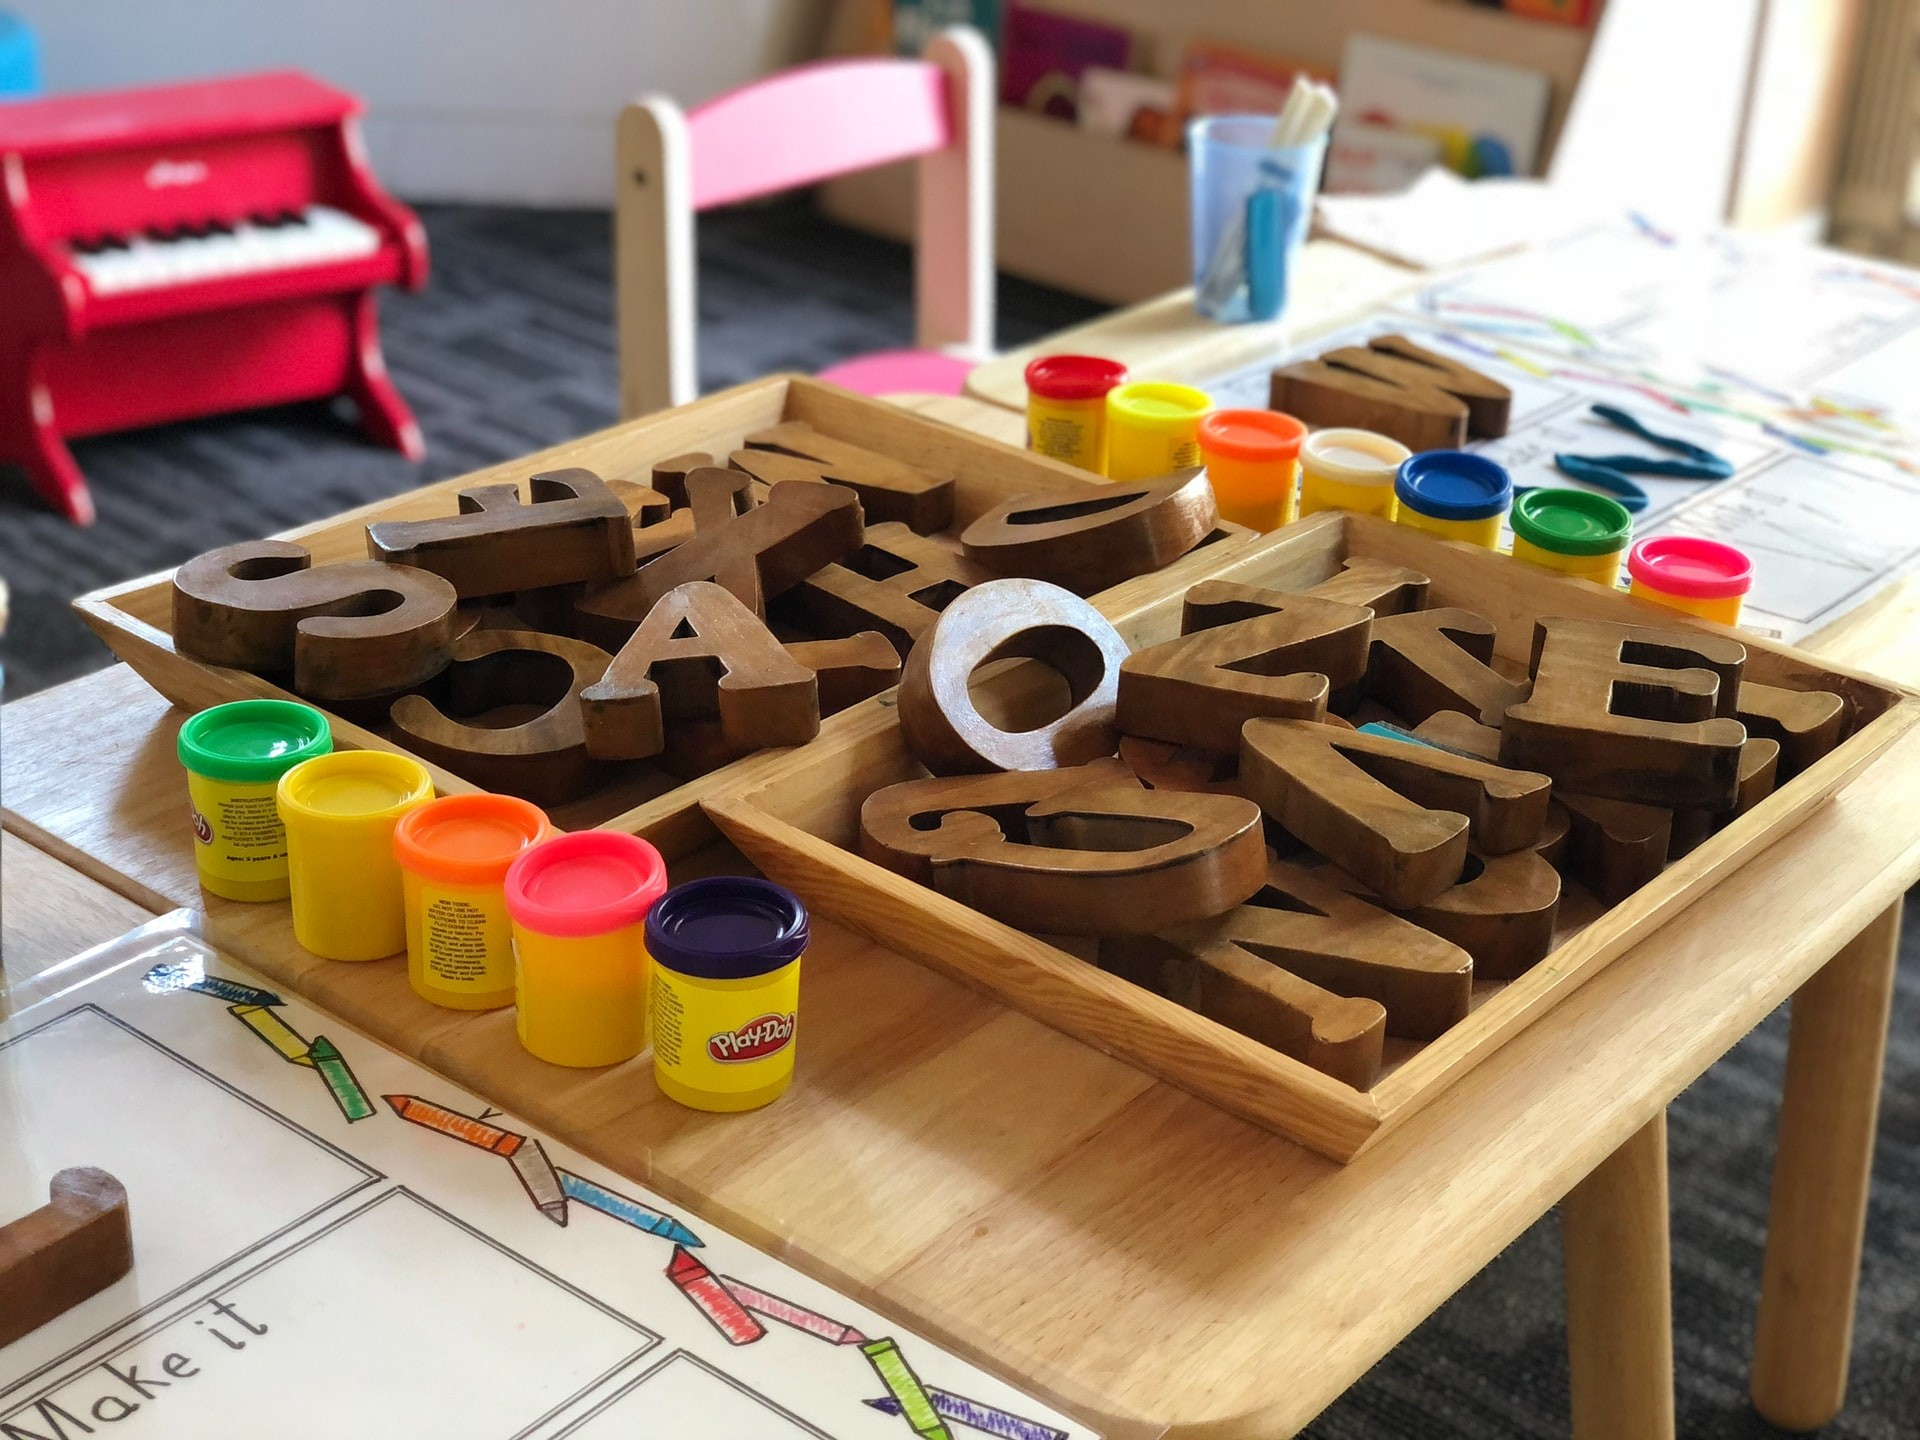 Activity station in a play-based learning classroom.